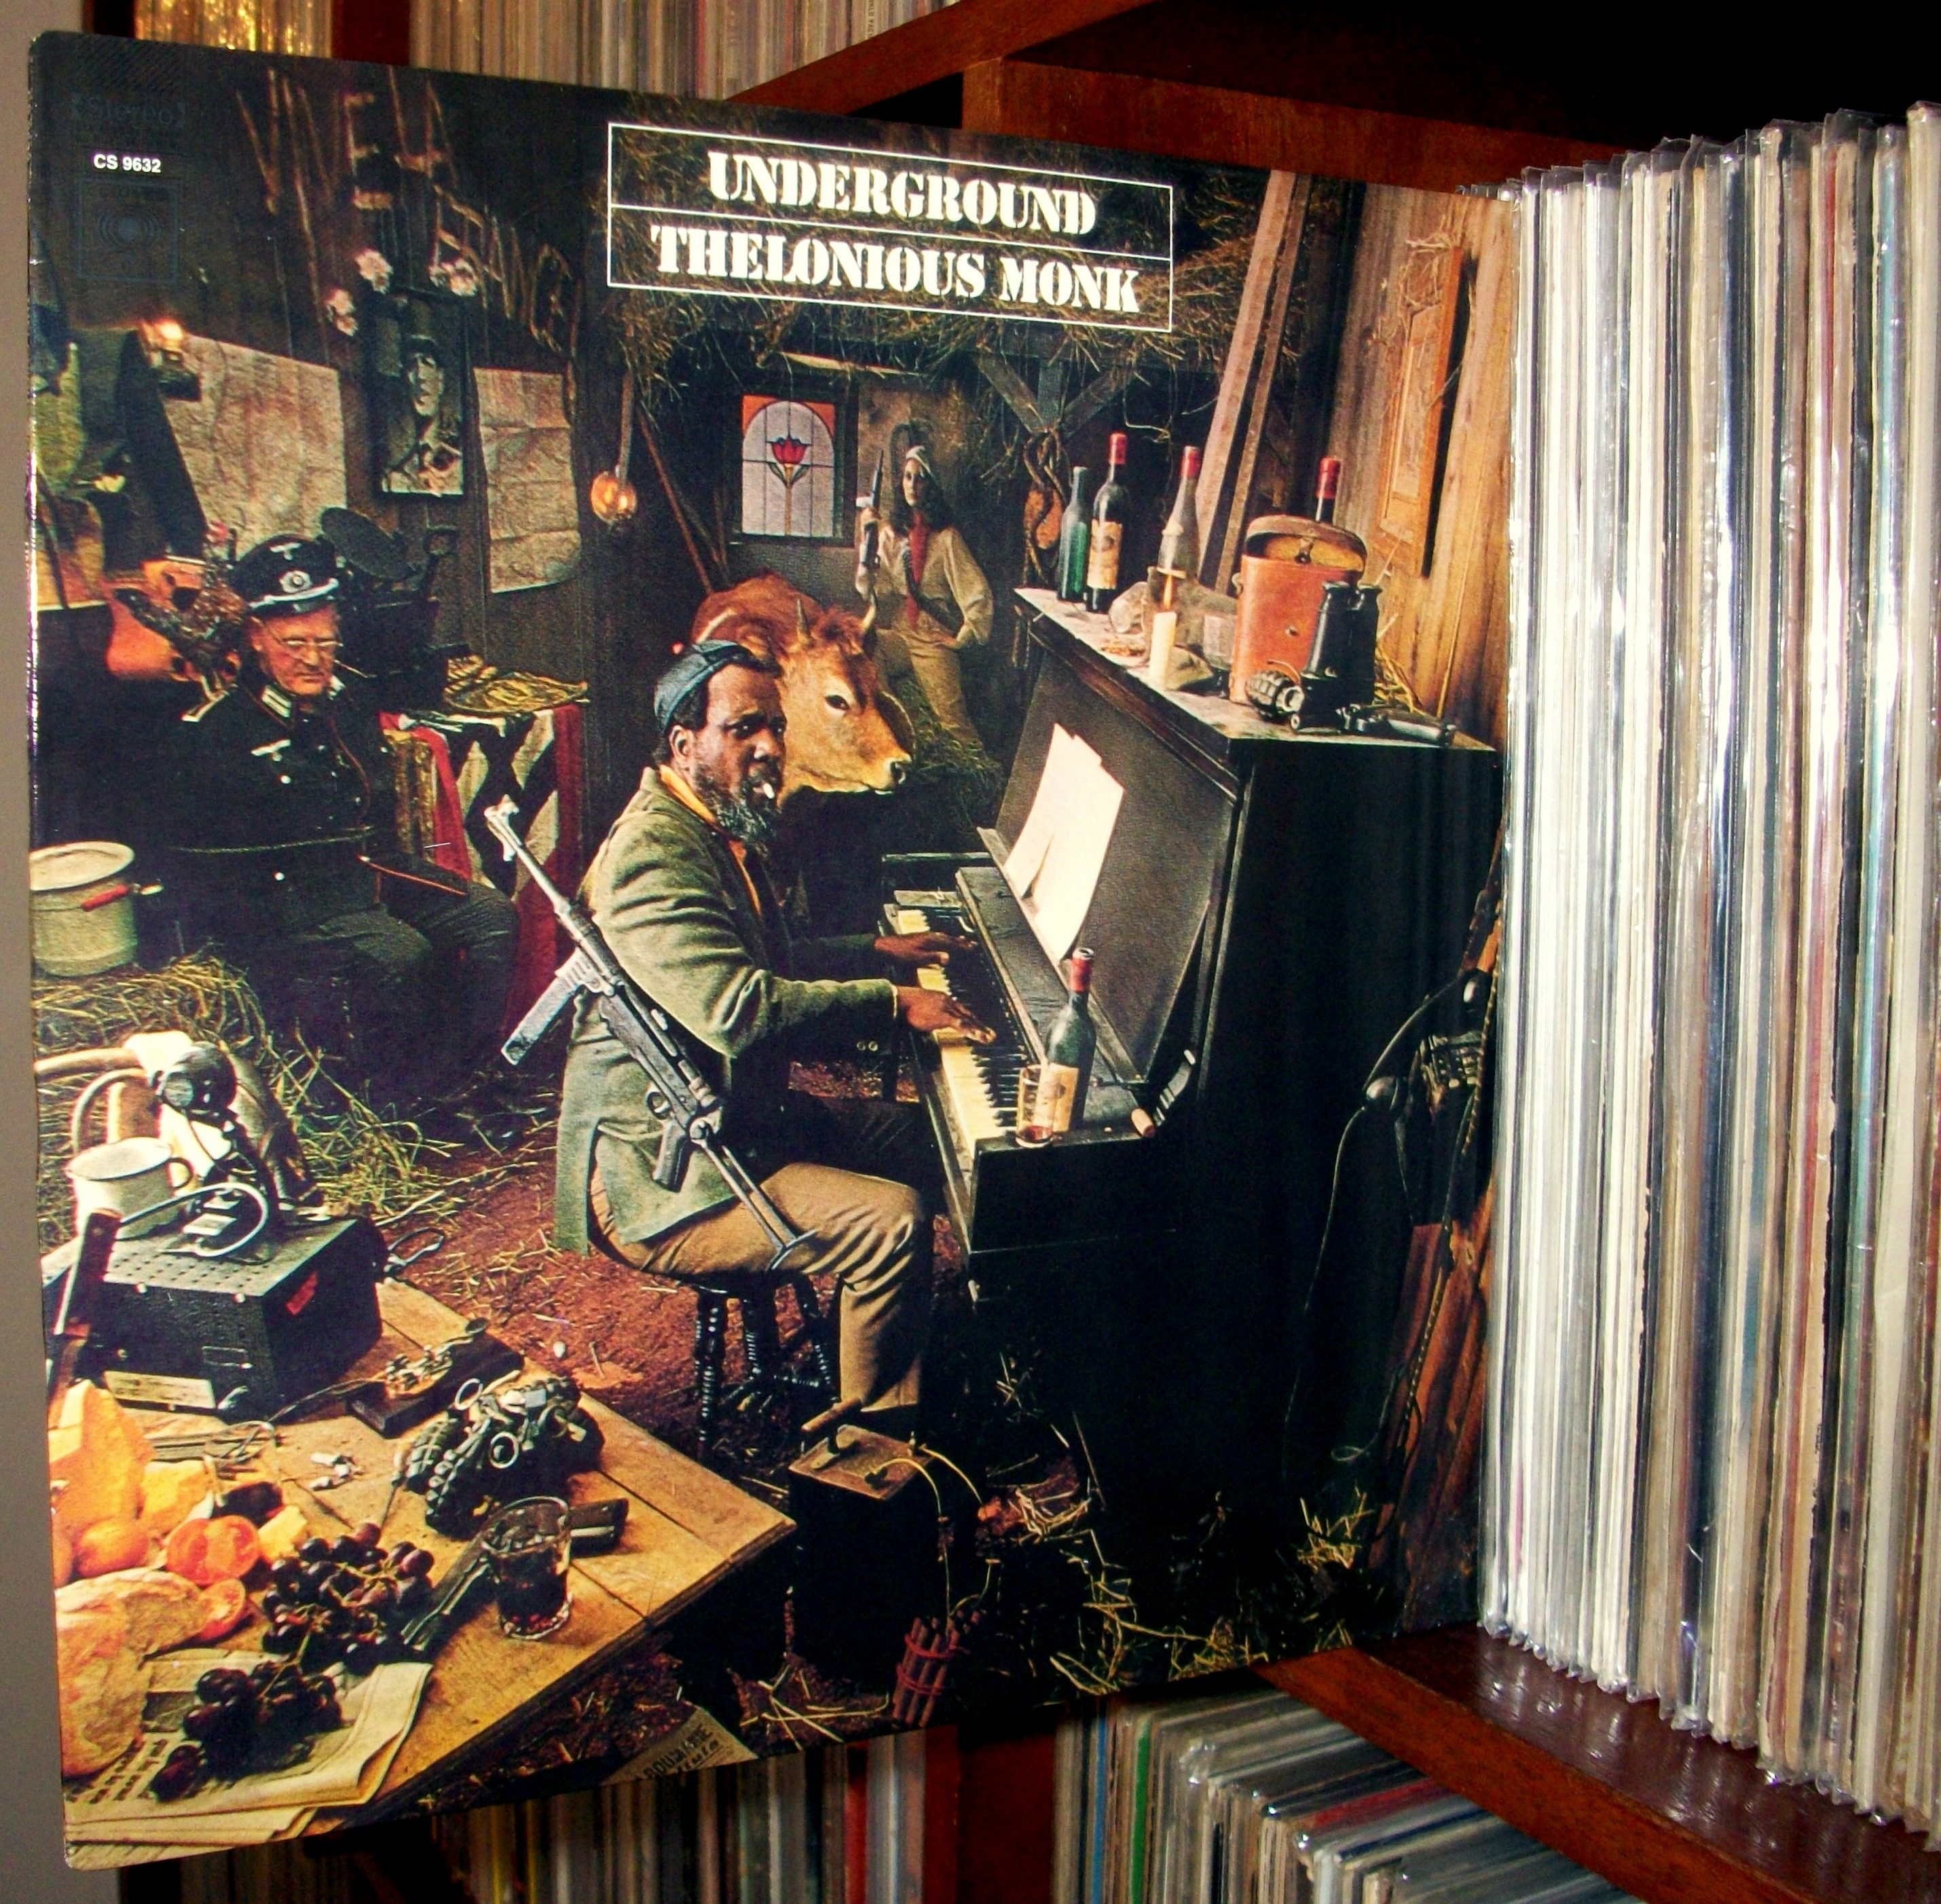 1978 additionally Thelonious Monk Well You Needn T It S Over Now 158646 furthermore B0040P1S7A as well Rootie monk1 furthermore Thelonious Himself. on thelonious monk